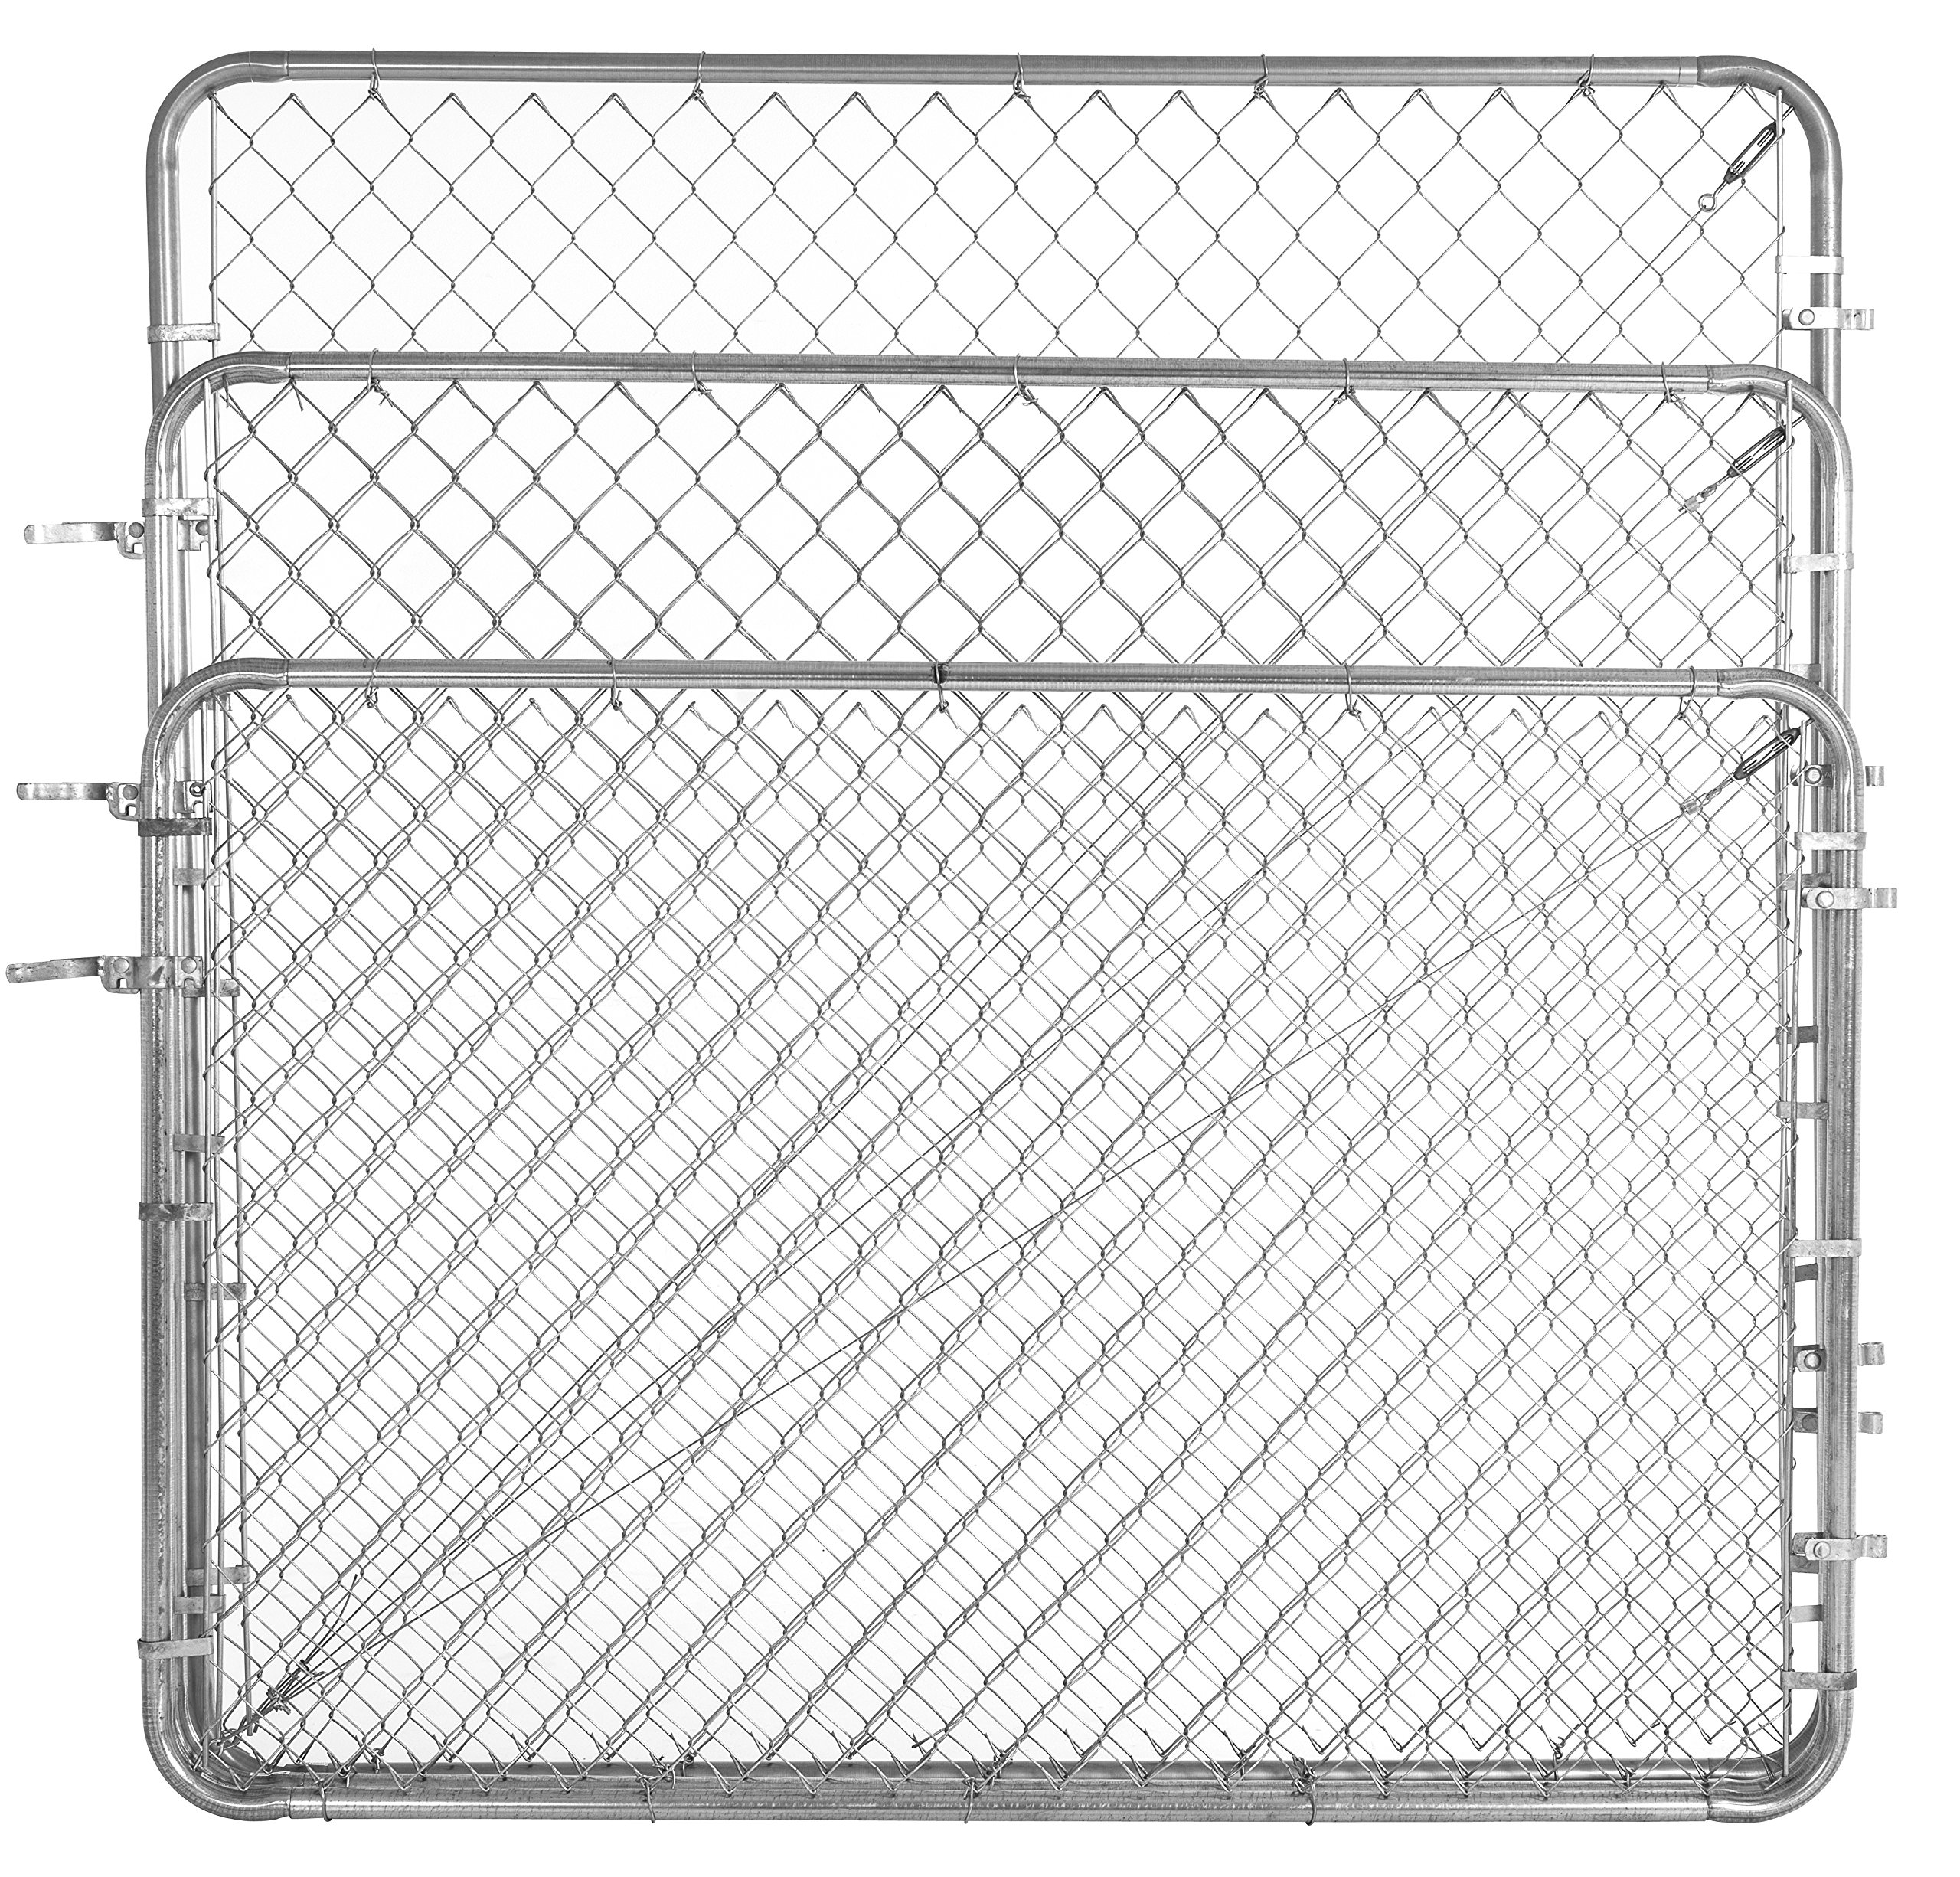 Fit-Right Chain Link Fence Walk-through Gate Kit (24''-72'' wide x 4' high) by Adjust-A-Gate (Image #3)